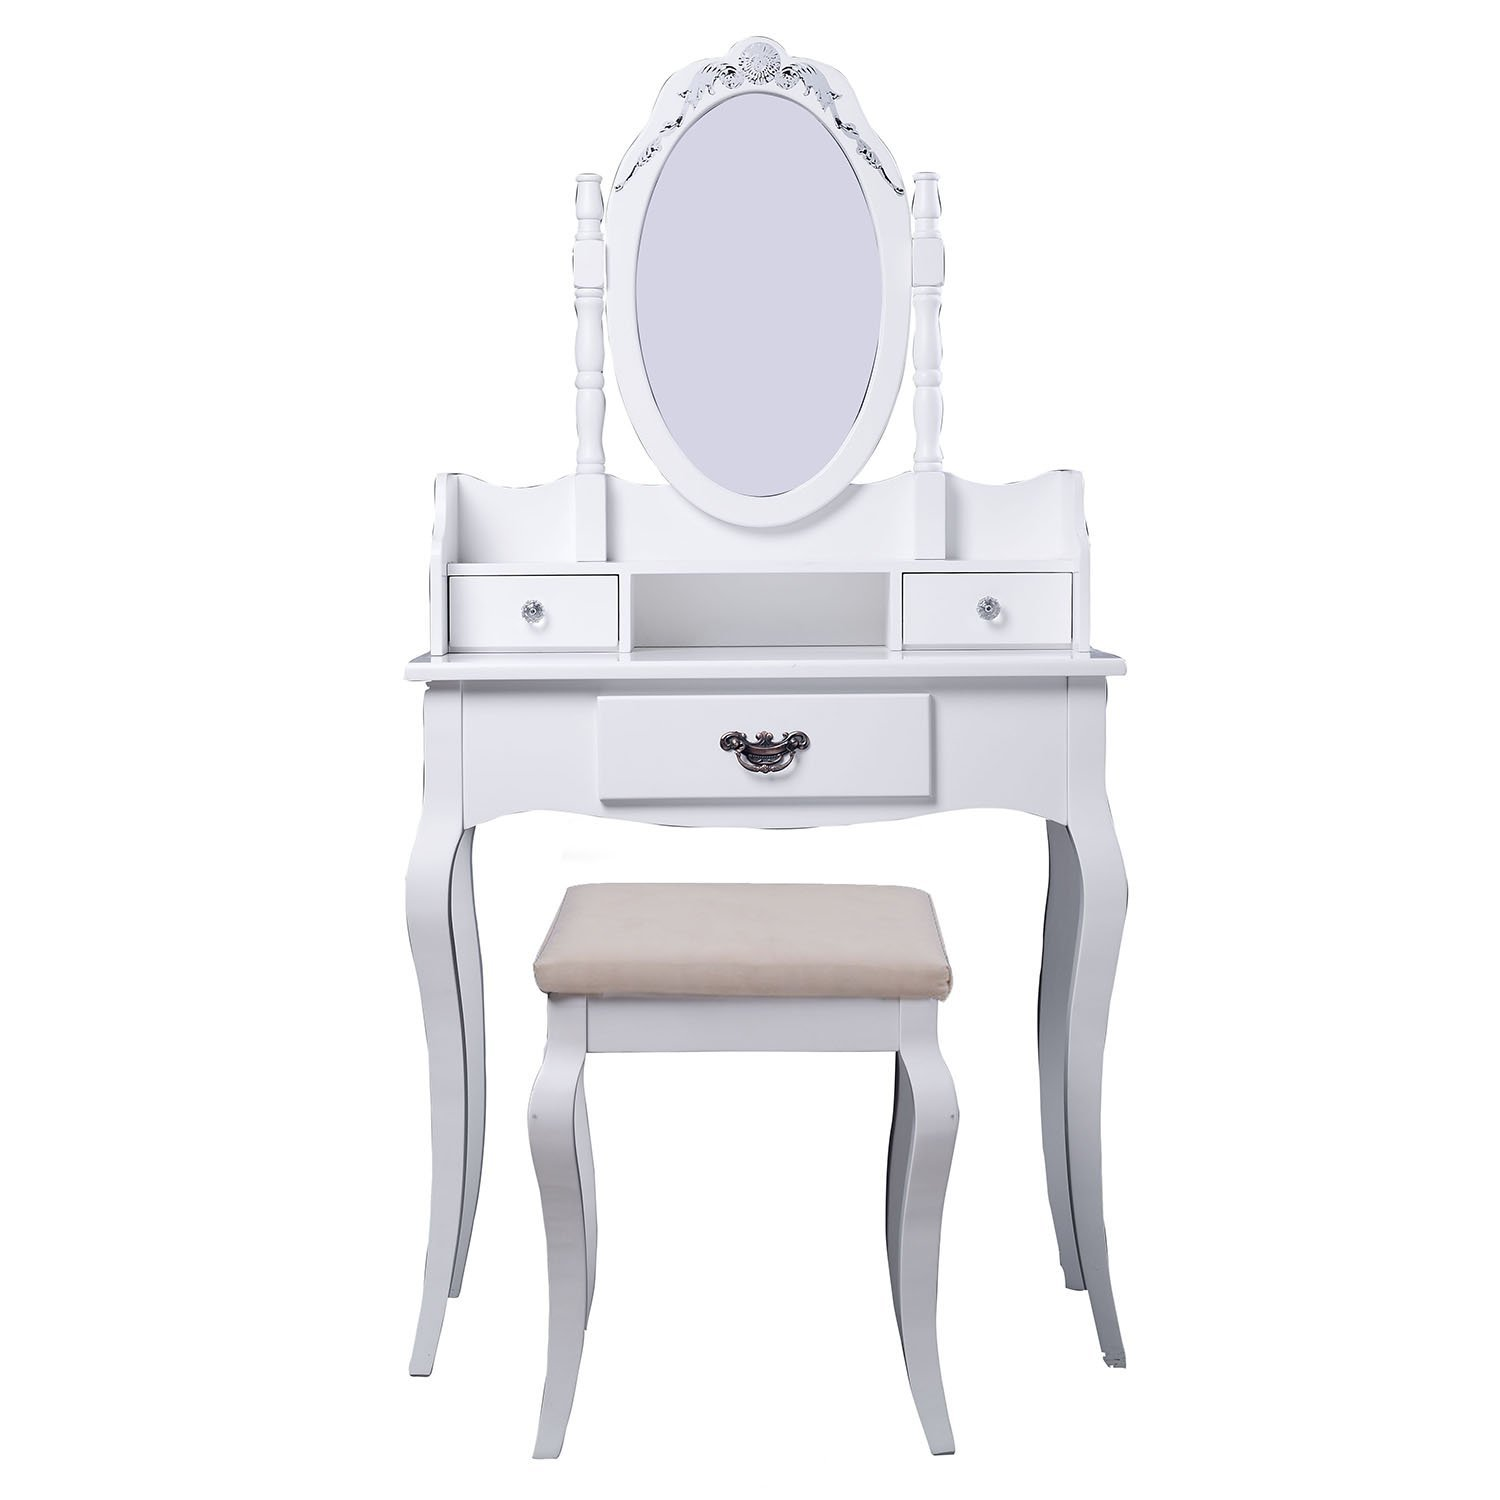 Magnificent Cad 179 99 Homcom Modern Vanity Dressing Table Stool Set Andrewgaddart Wooden Chair Designs For Living Room Andrewgaddartcom